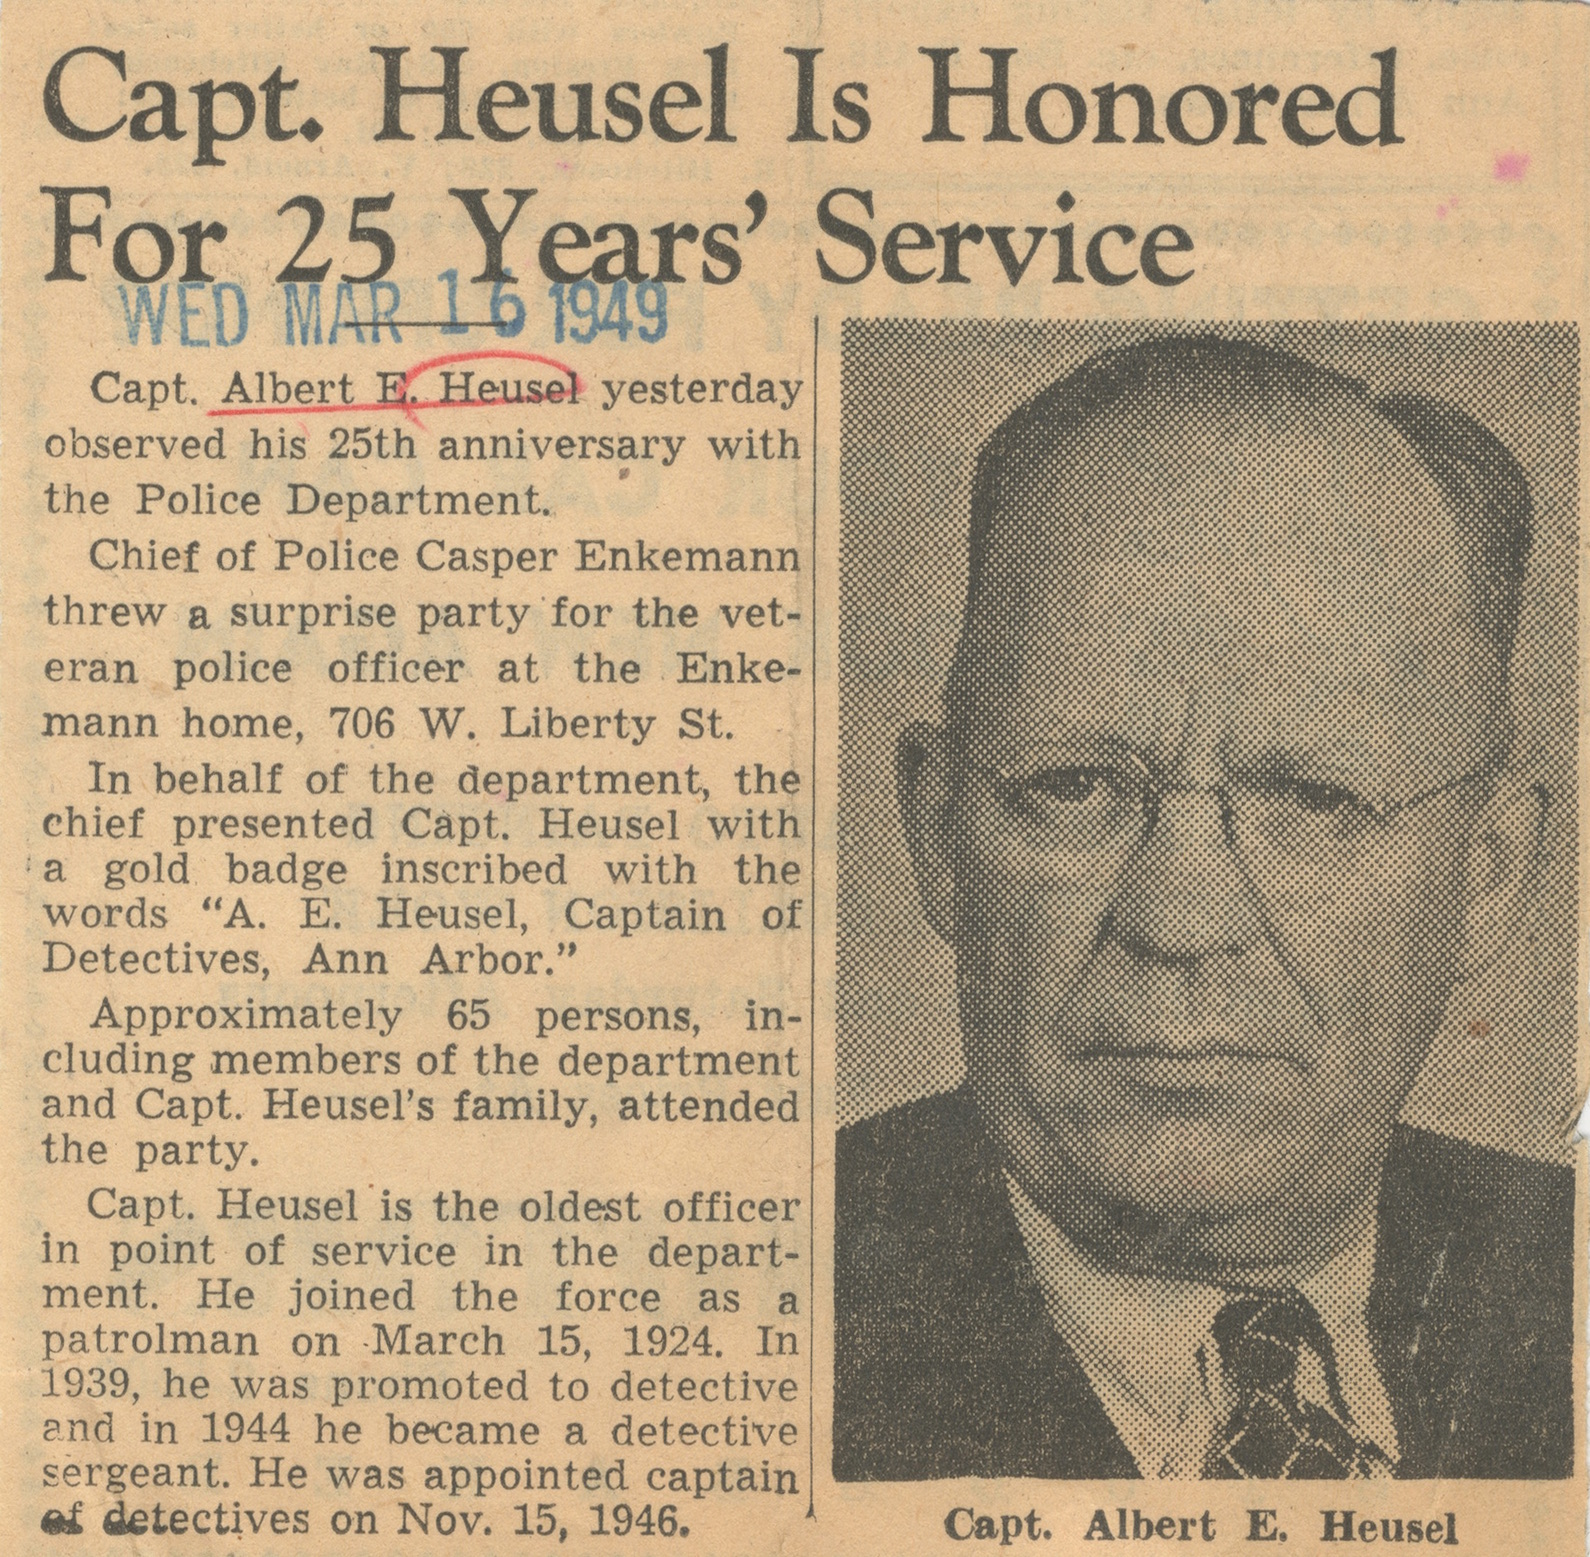 Capt. Heusel Is Honored For 25 Years' Service image